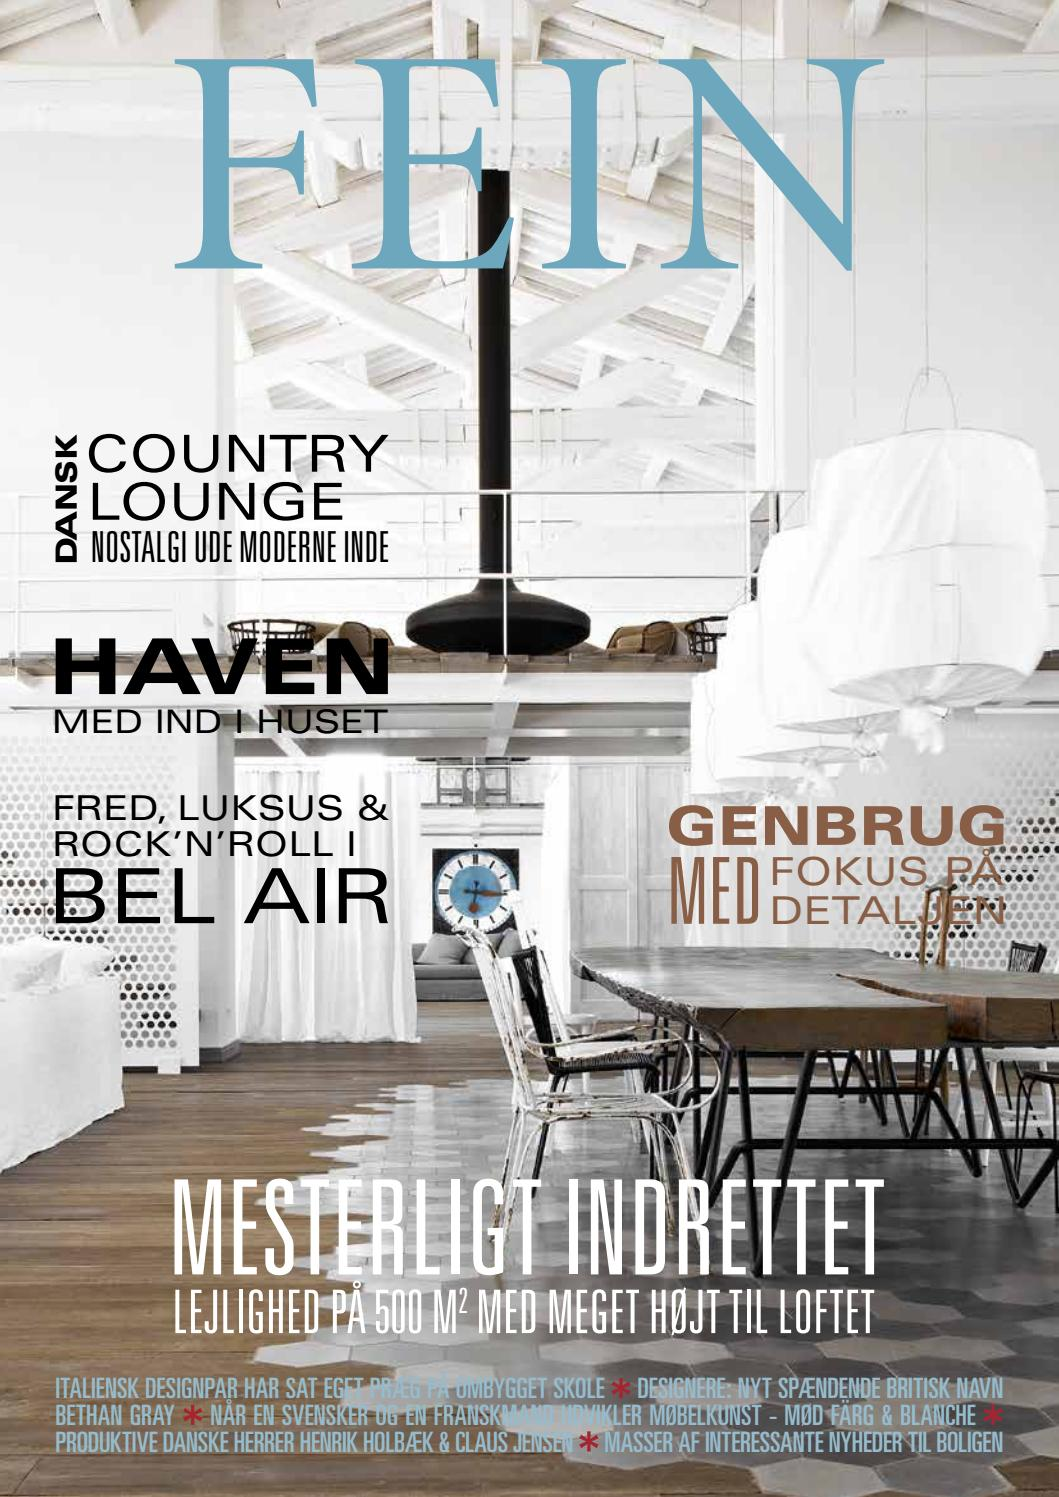 Fein 2014 #6 by fein   issuu